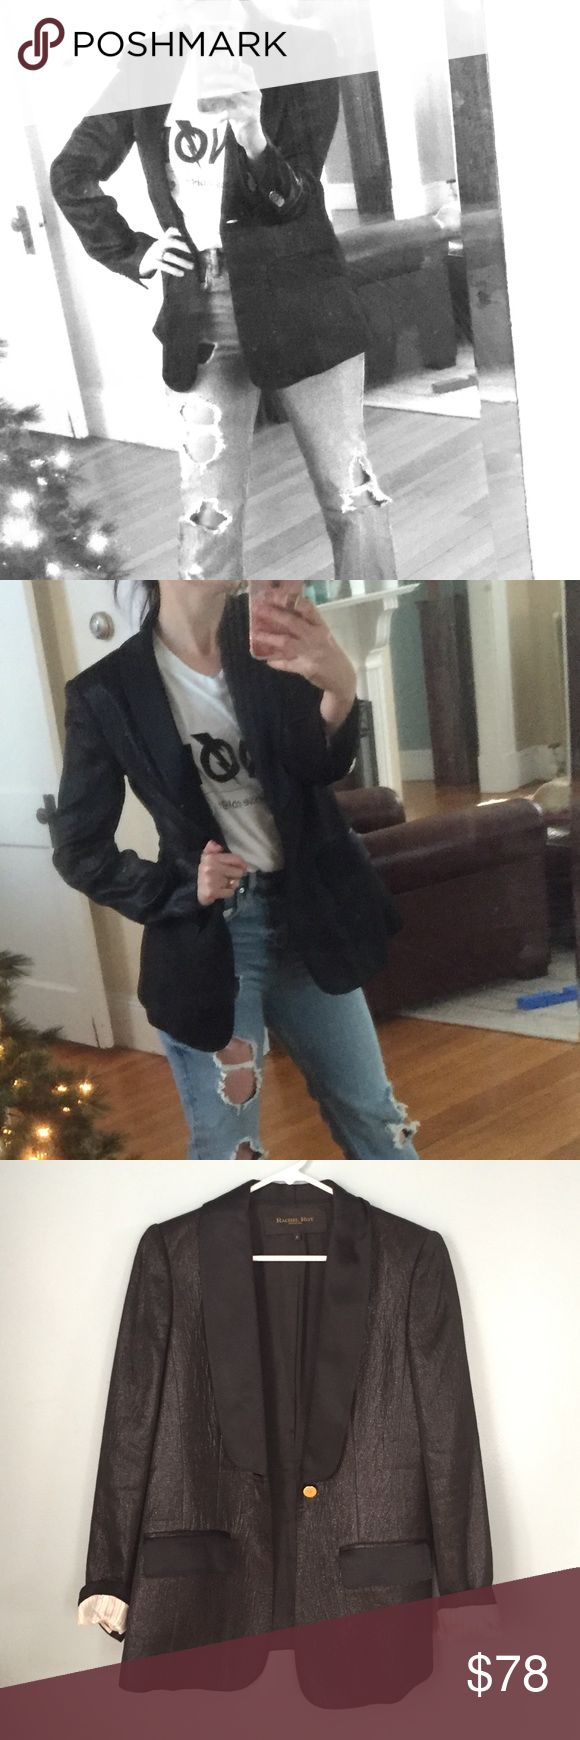 Rachel Roy Black tux blazer Ever-so-slightly sparkly black jacket has satin lapels and gold buttons. Dress it up or down! By Rachel Roy Signature Collection. Rachel Roy Jackets & Coats Blazers